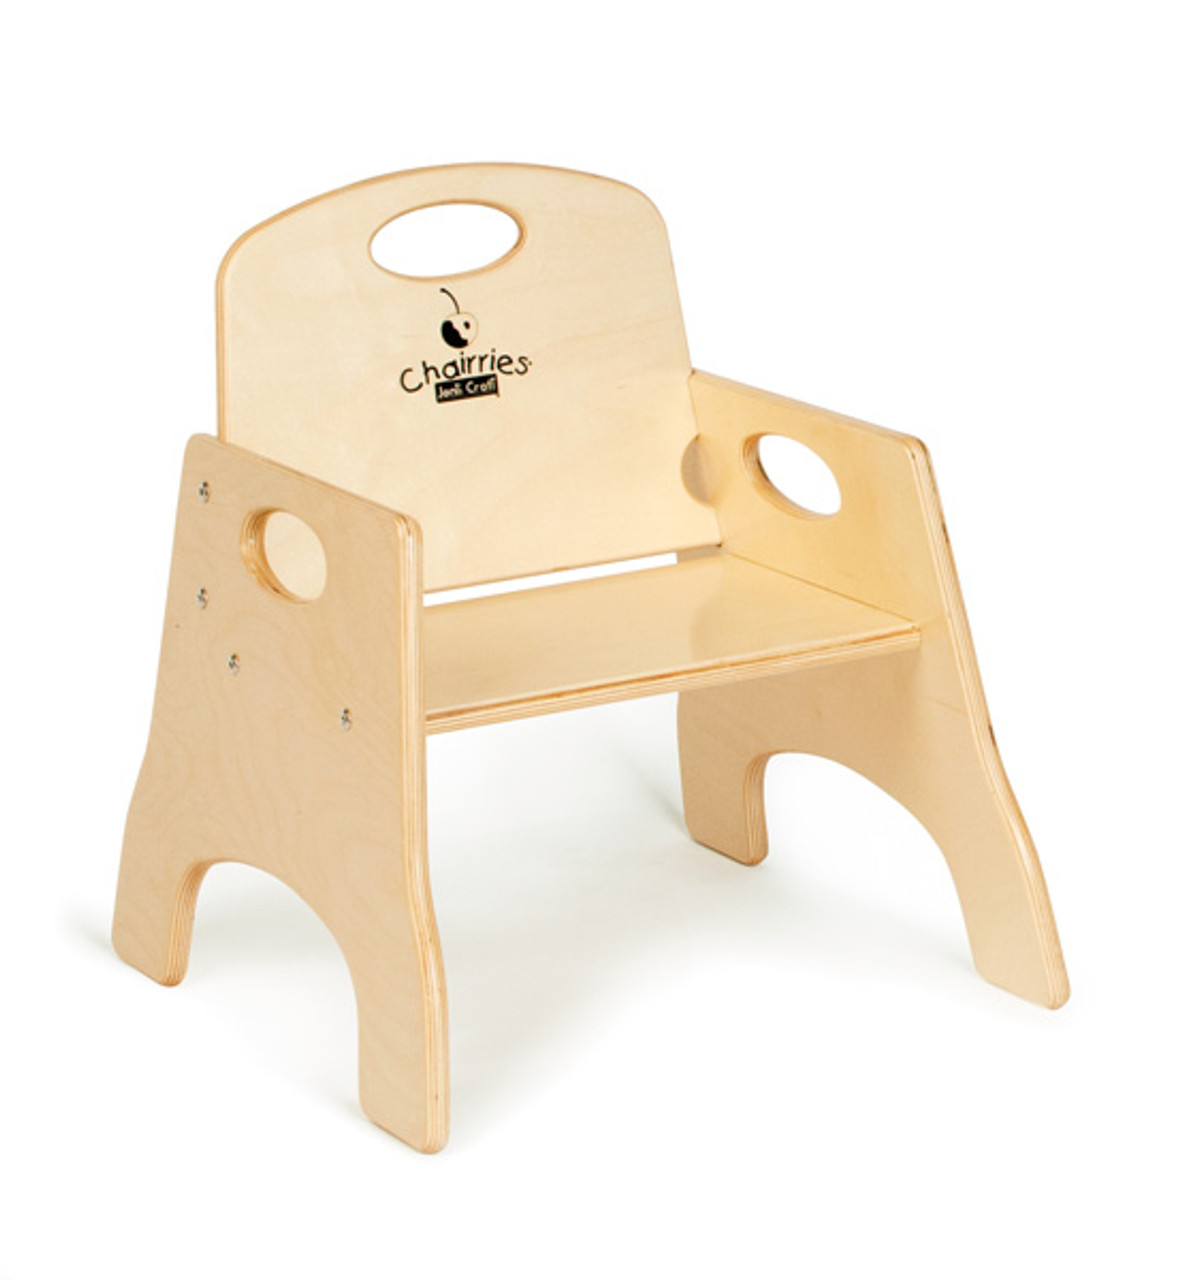 Jonti Craft Classroom Chairries Kids Tables And Chairs